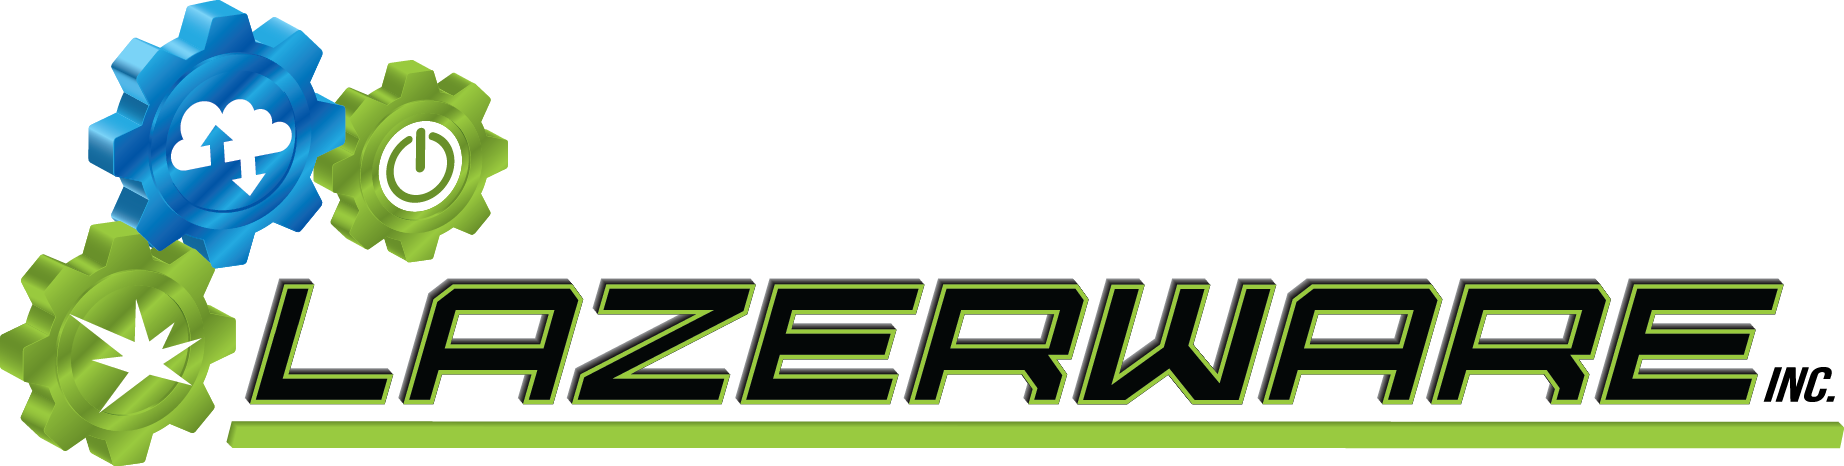 Lazerware Inc.